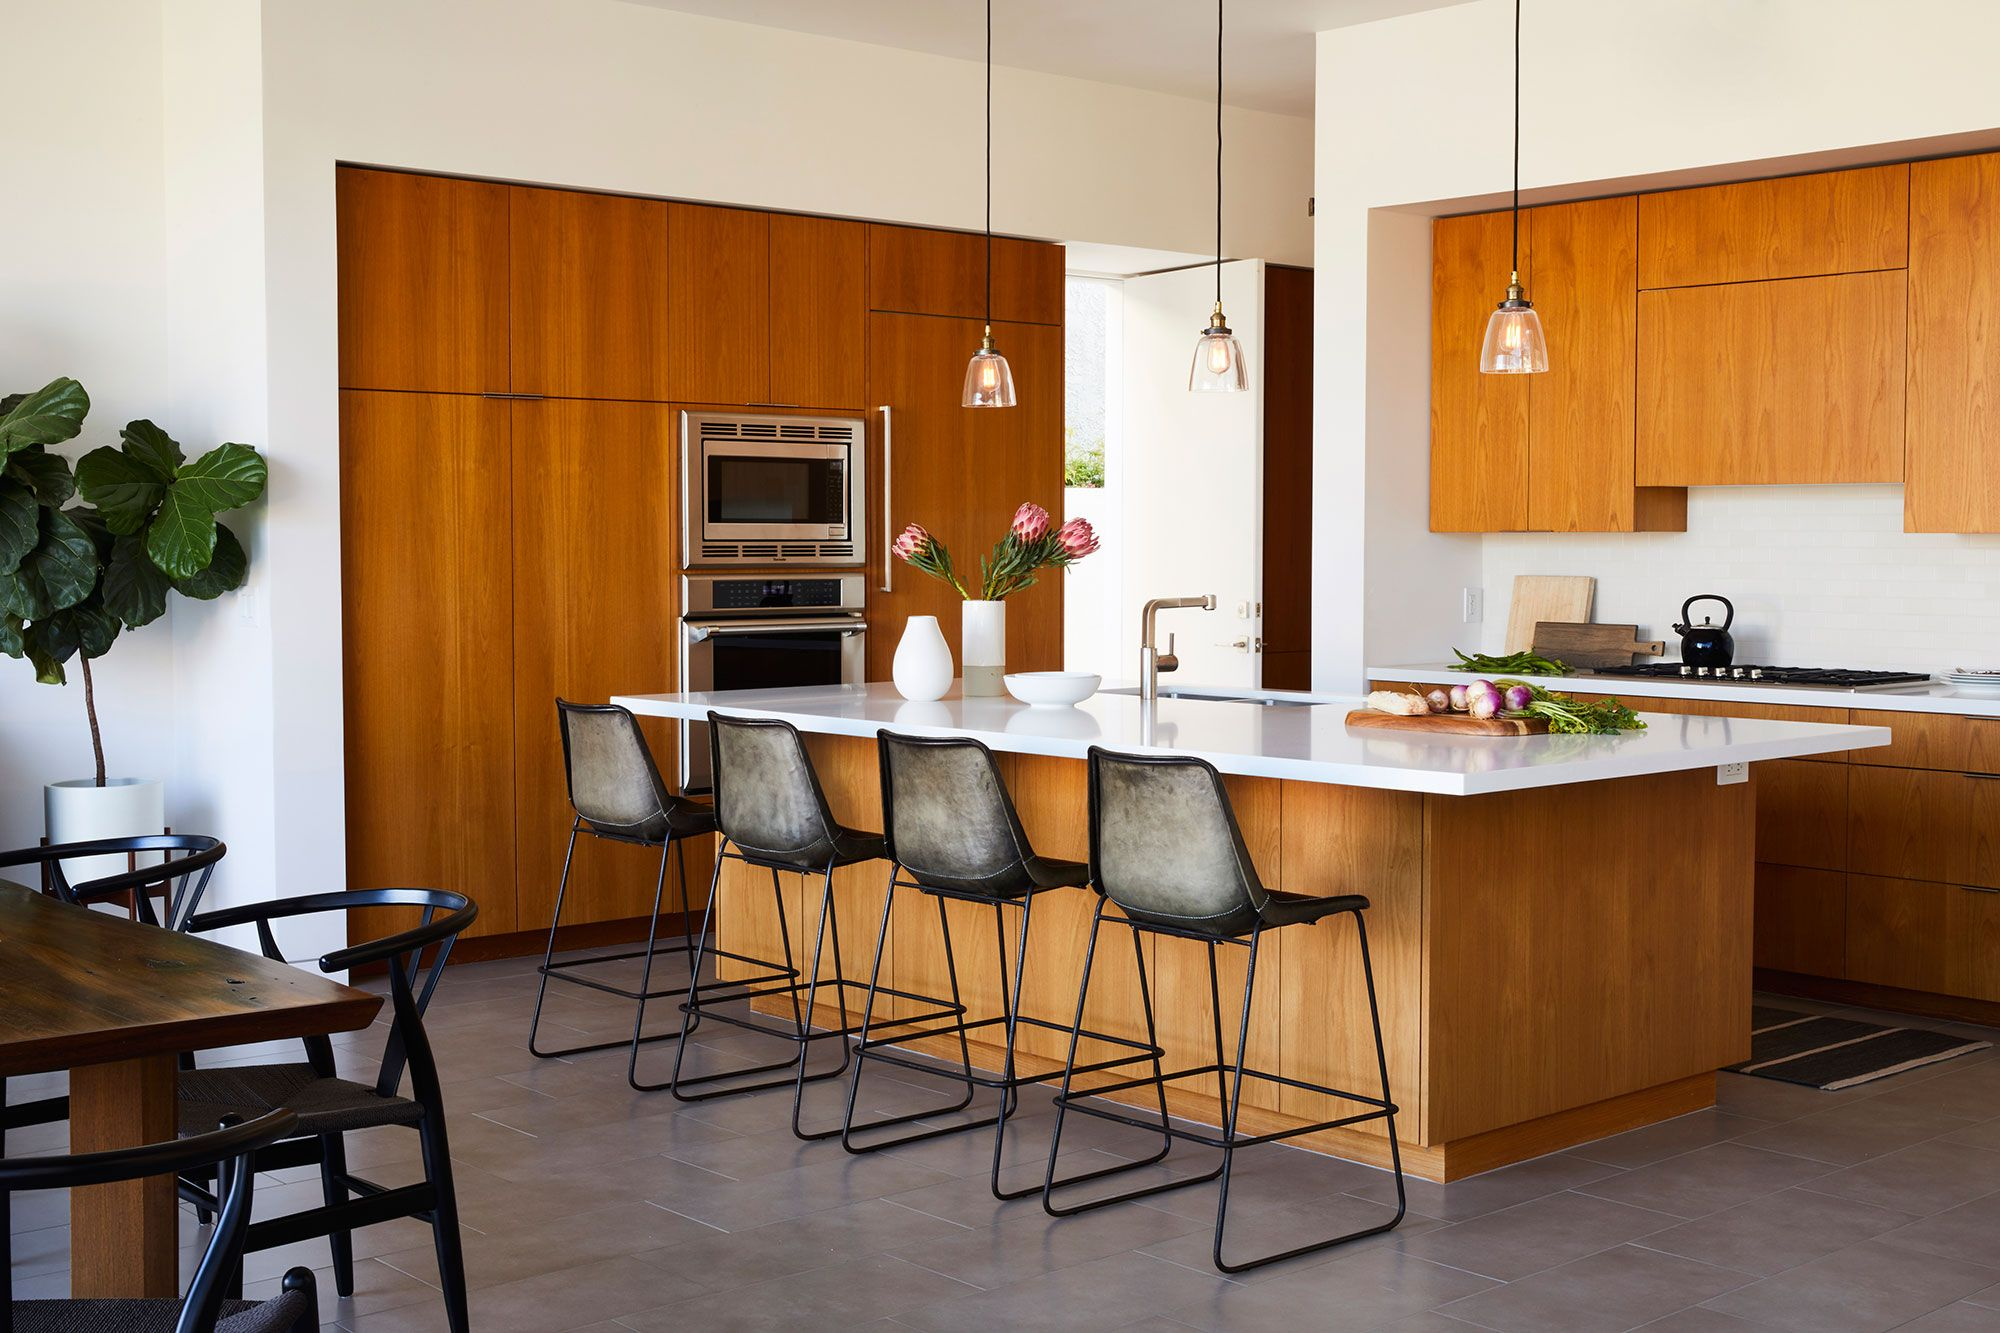 10 modern cabinet ideas thatll freshen up your kitchen